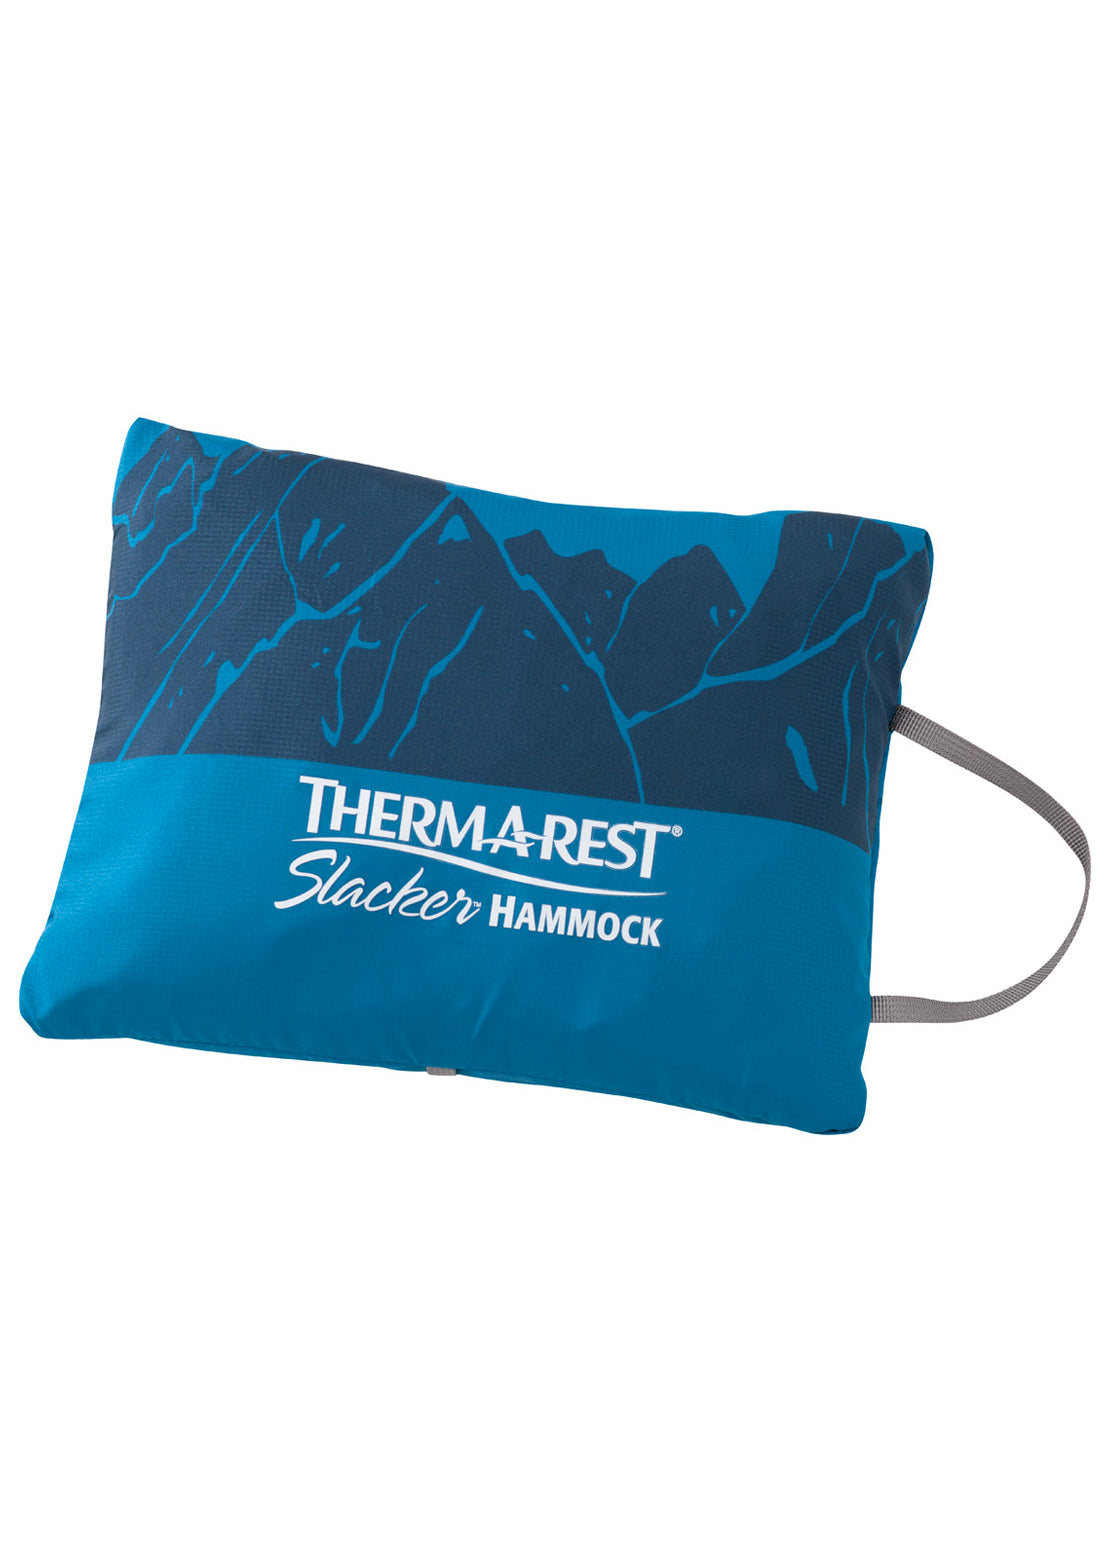 Therm-A-Rest Slacker Double Hammock Celestial